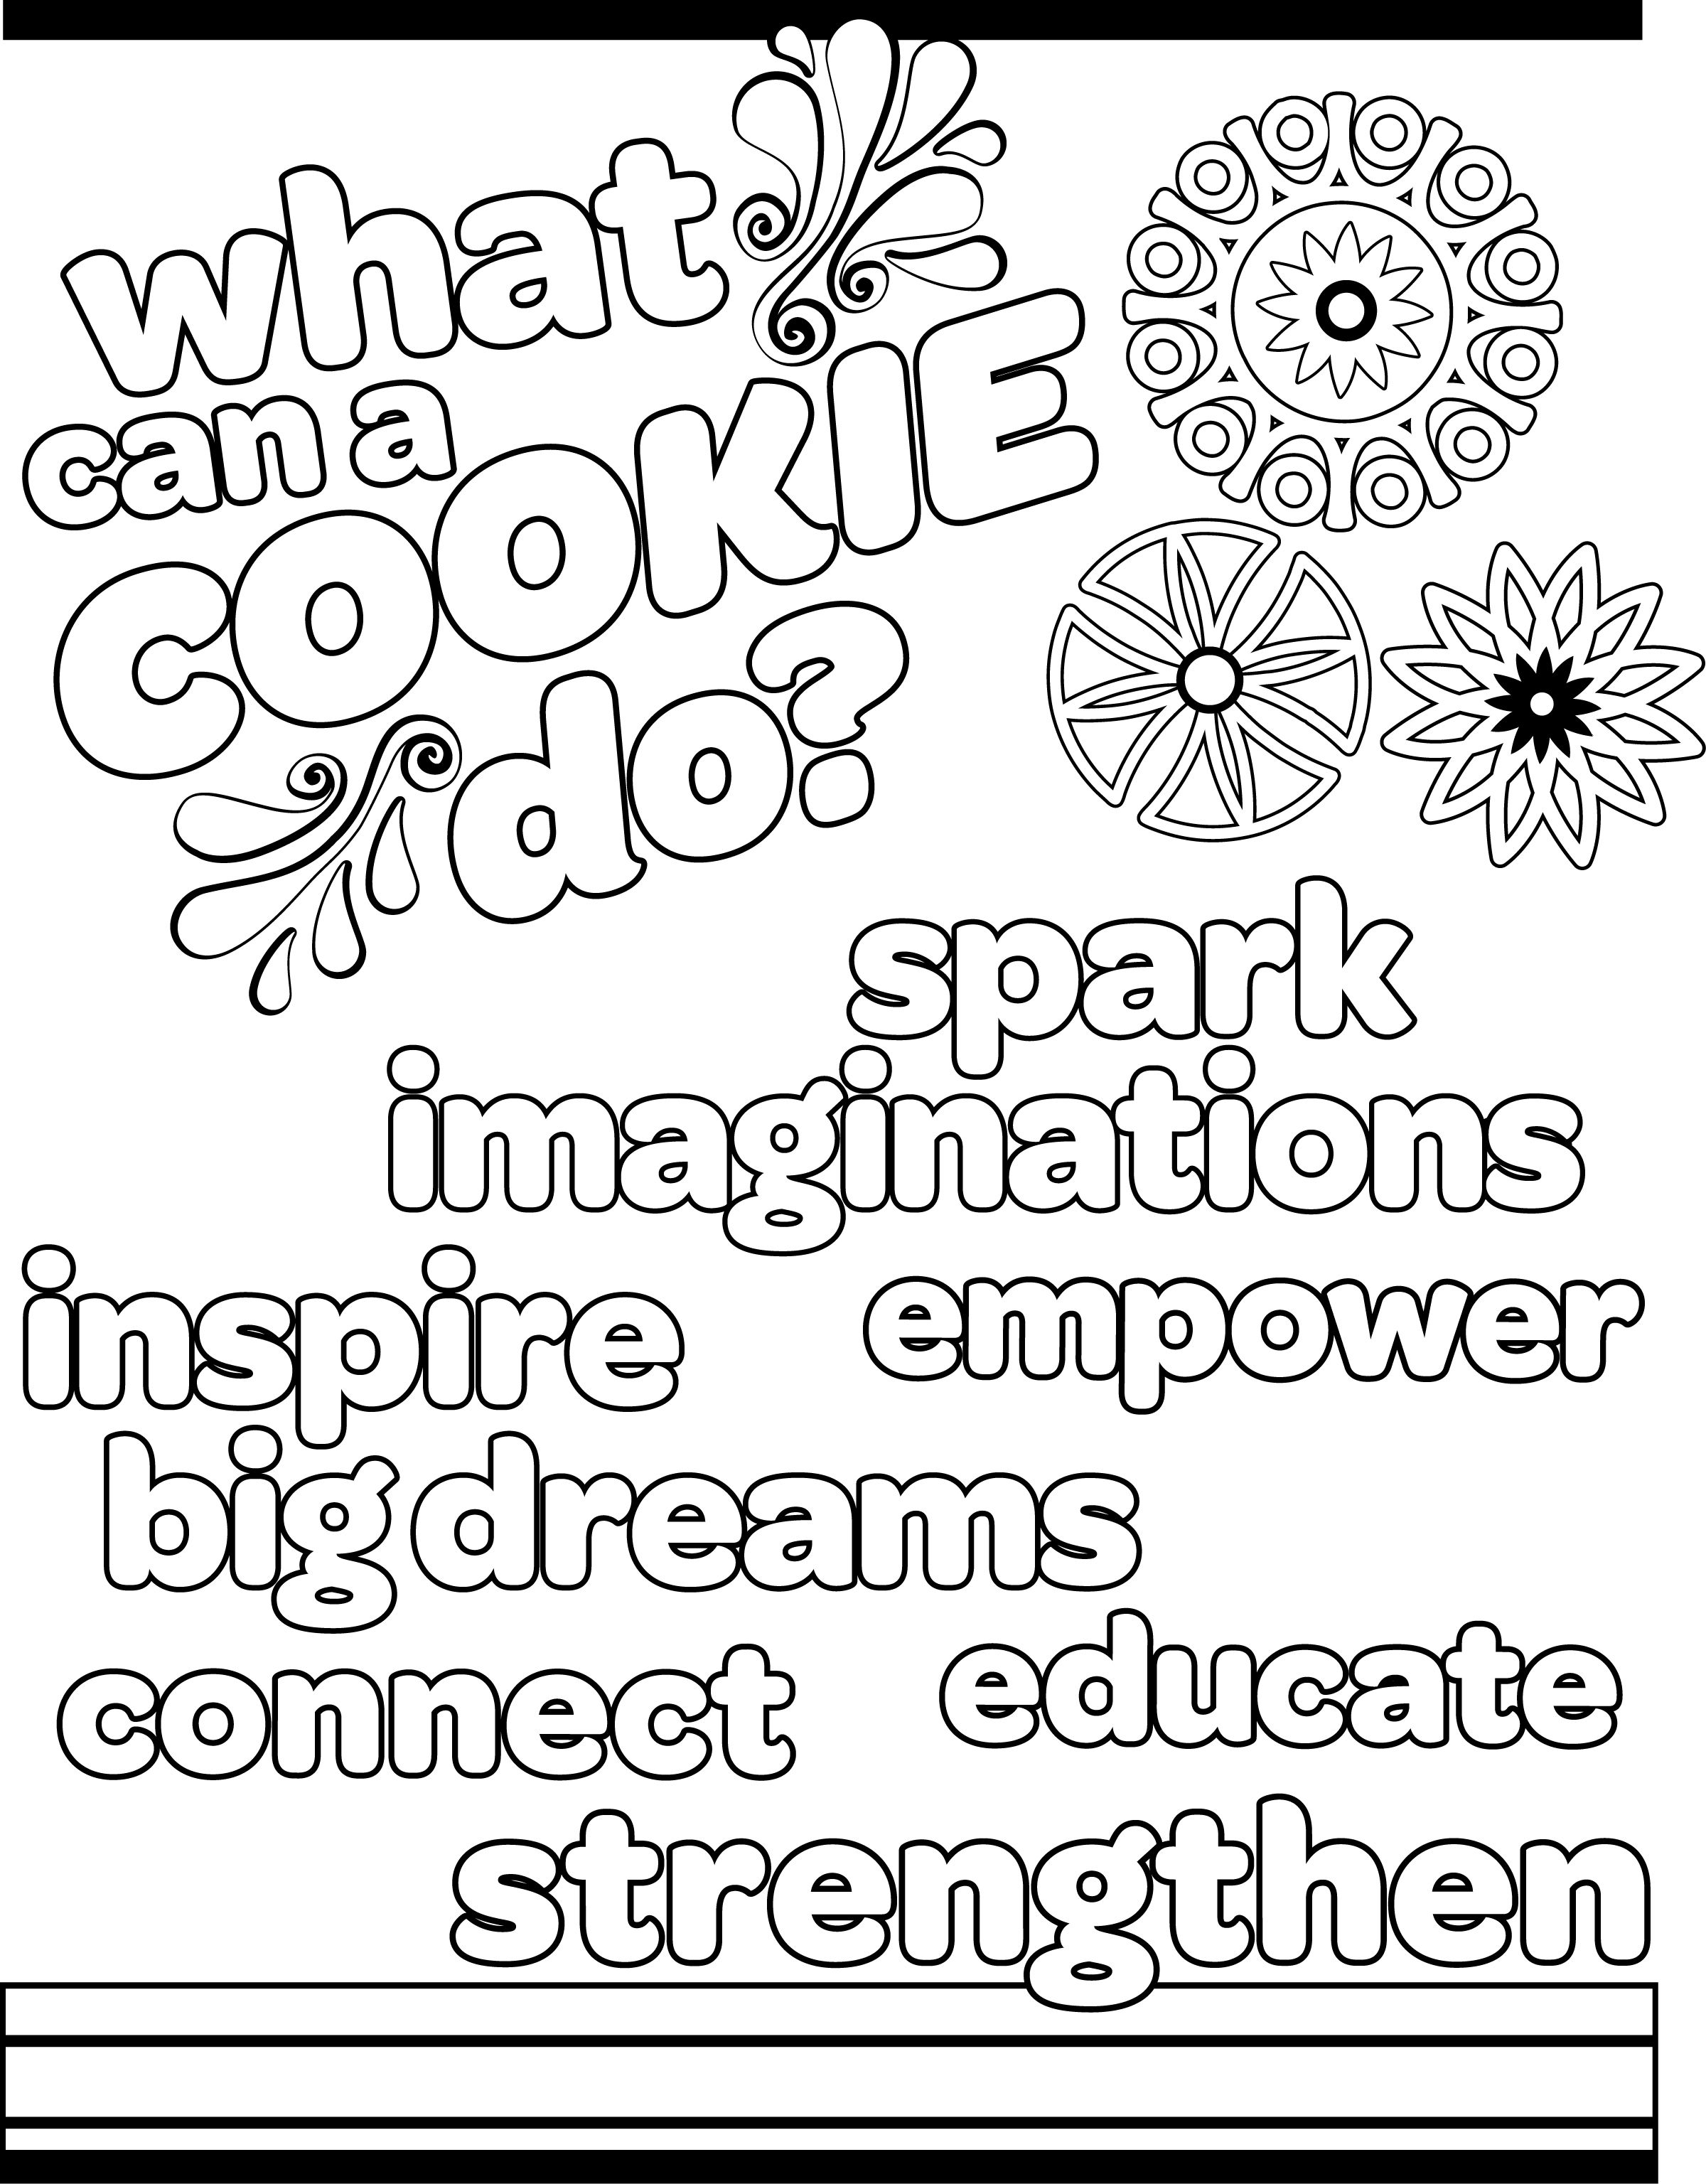 Girl Scout Cookie Colouring Pages Page Id 88961 Uncategorized Yoand Biz Girl Scout Cookies Booth Girl Scout Cookie Sales Girl Scout Cookies